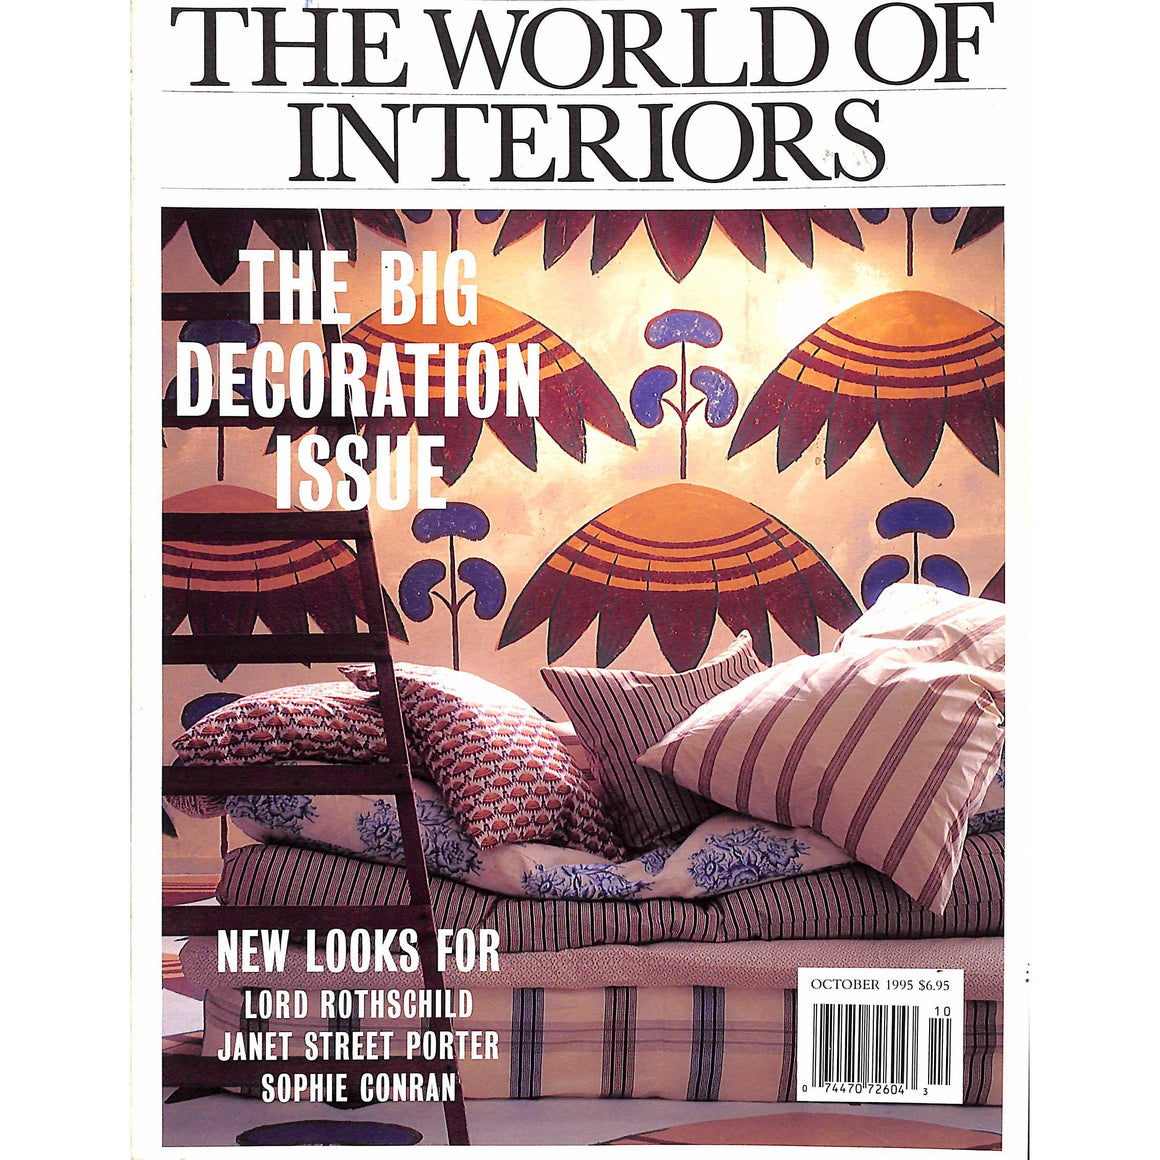 The World of Interiors October 1995